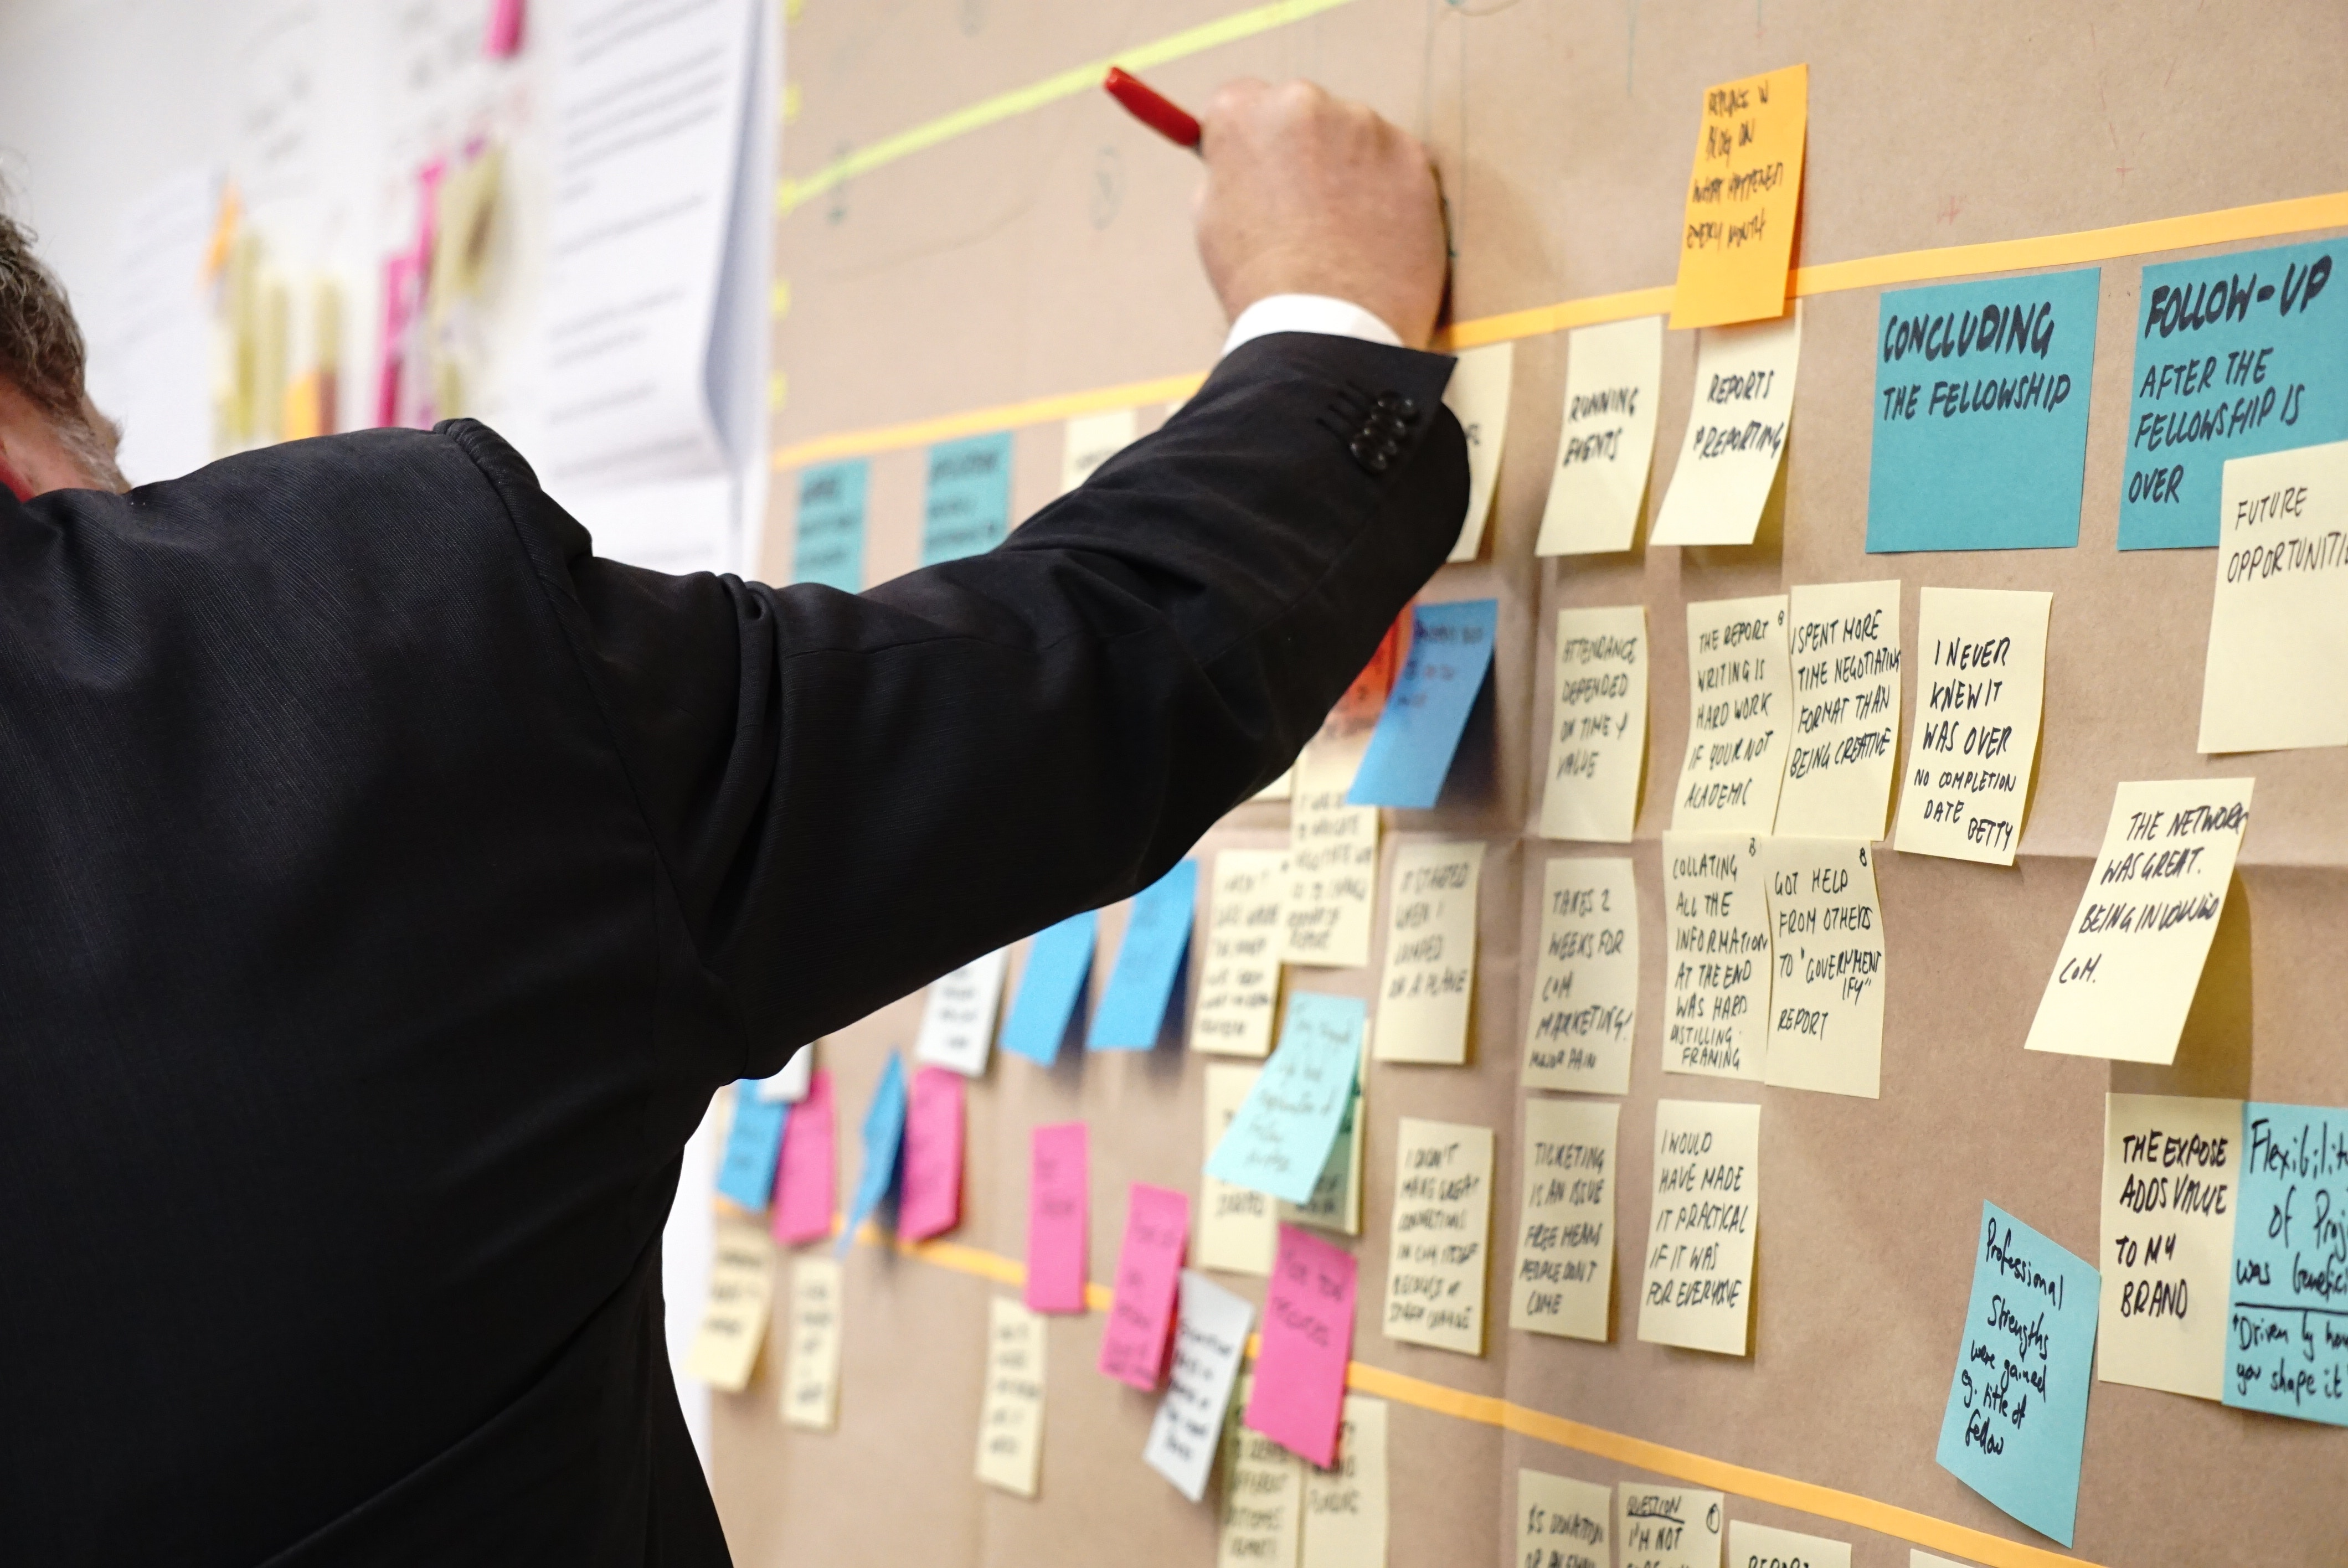 Agile HR SwissRe chapmancg postit notes